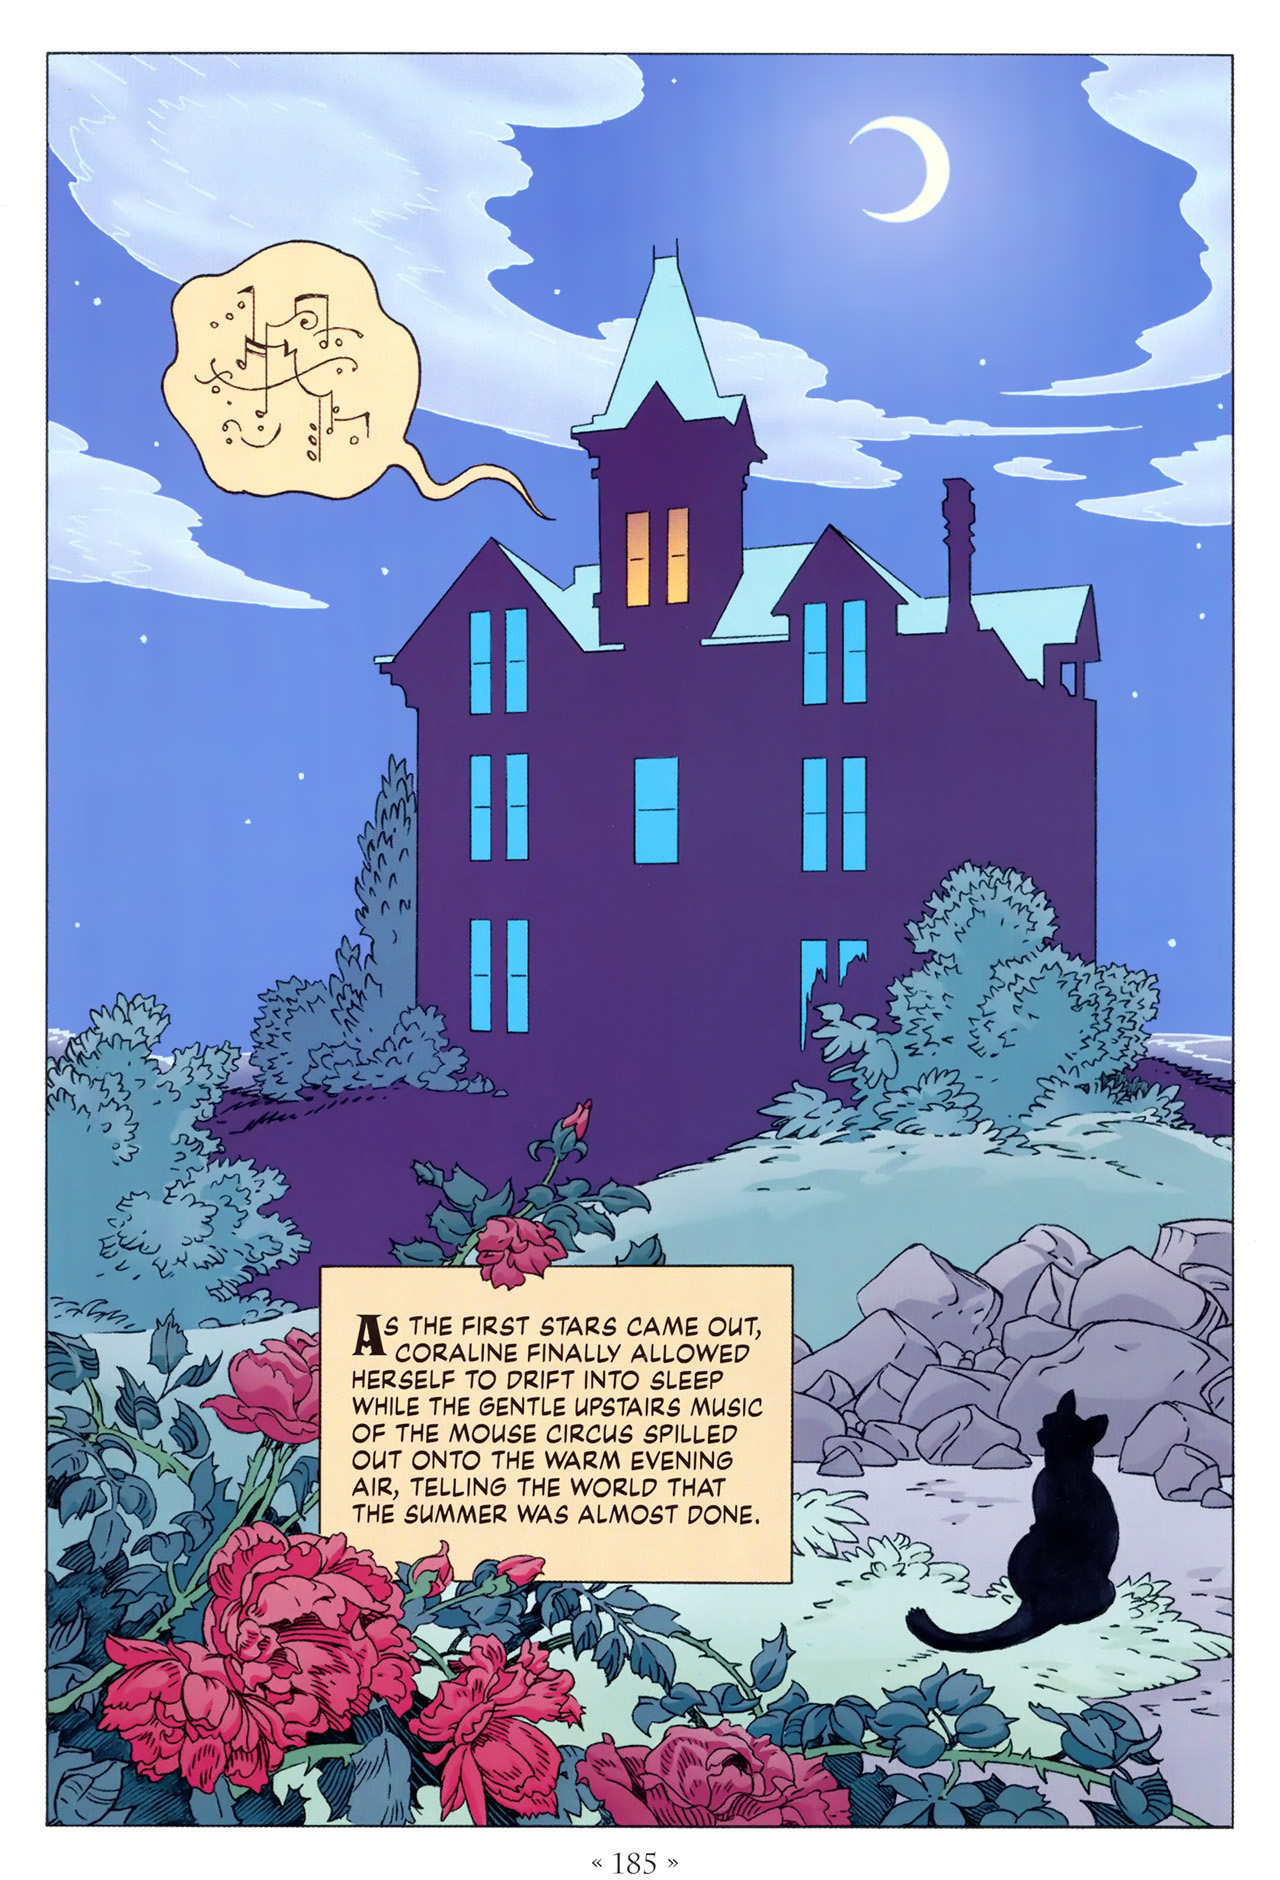 Read online Coraline comic -  Issue #1 - 191